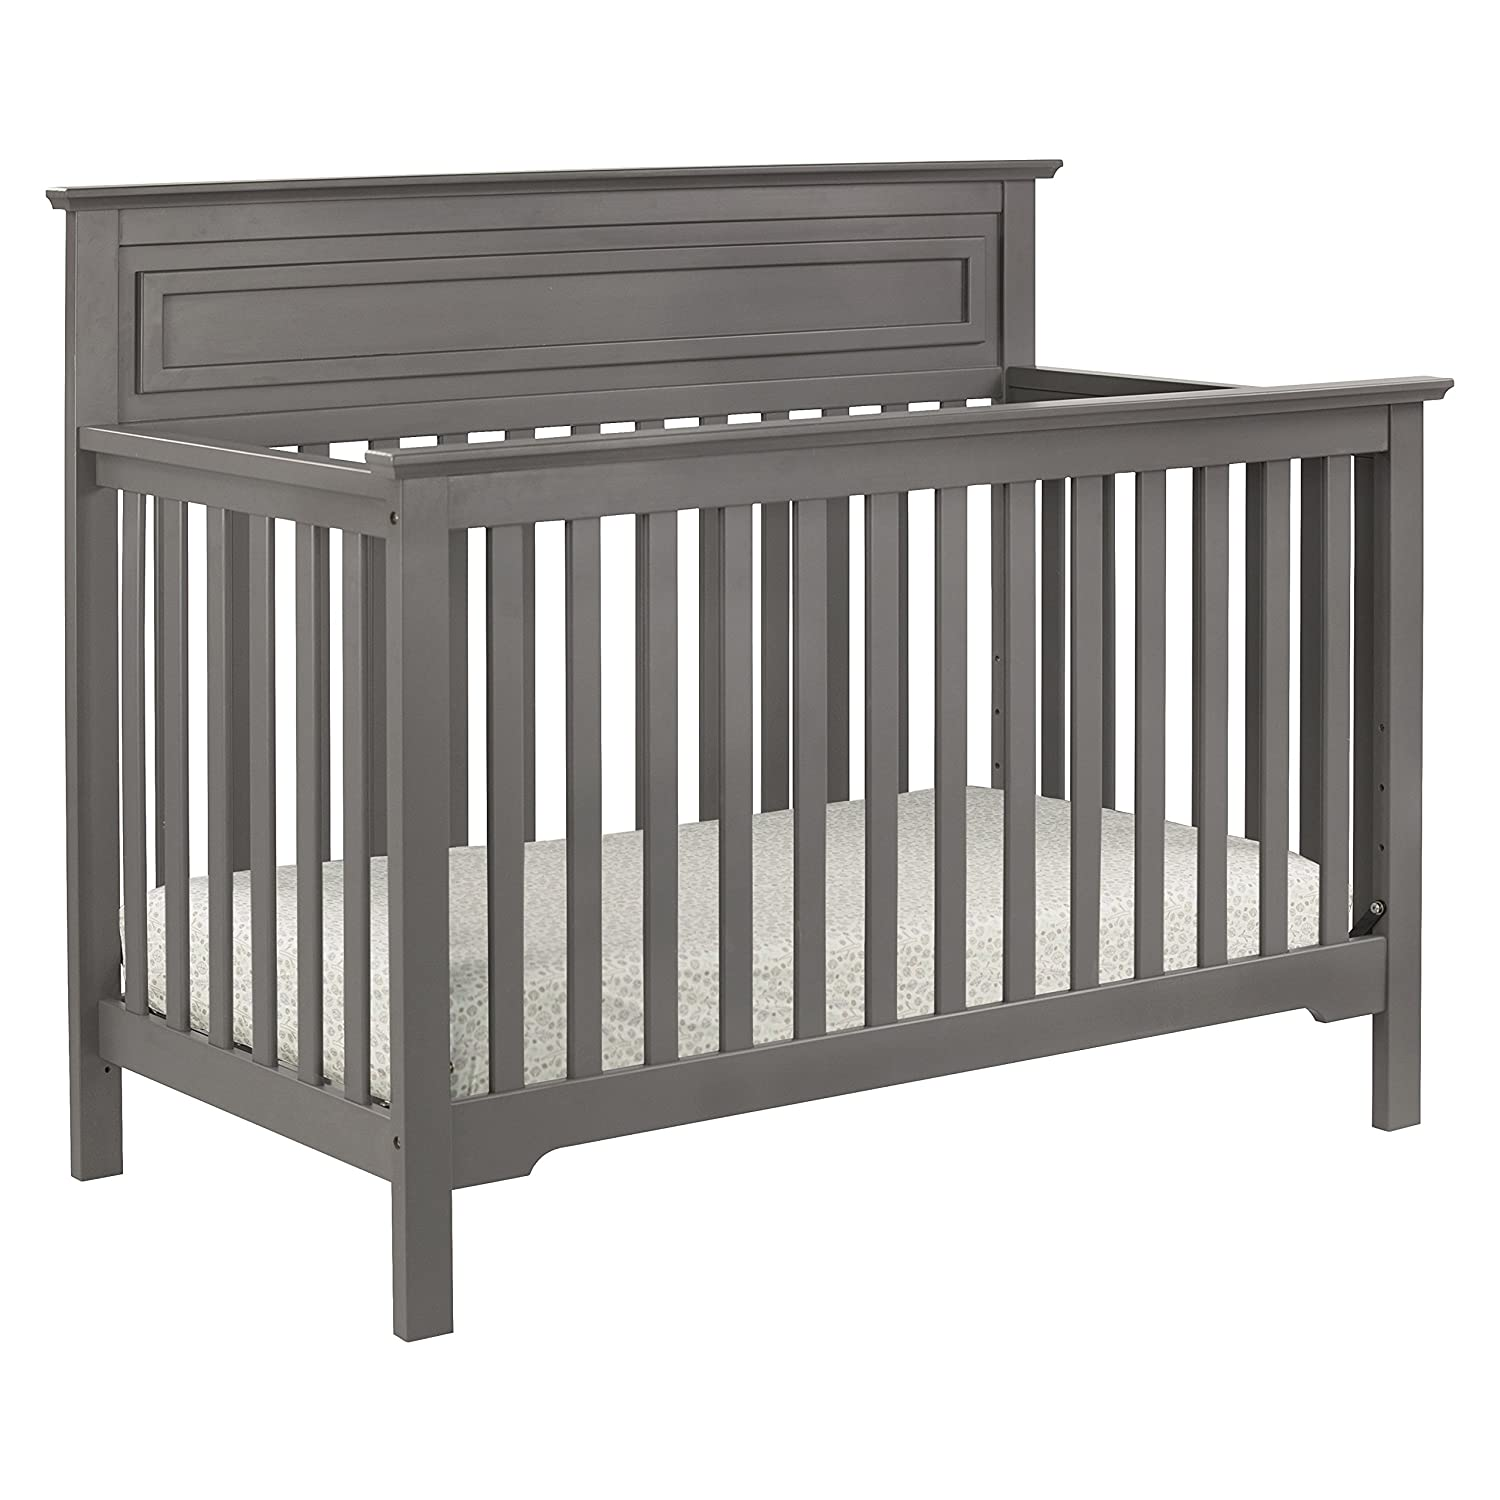 DaVinci Autumn 4 In 1 Convertible Crib, Slate